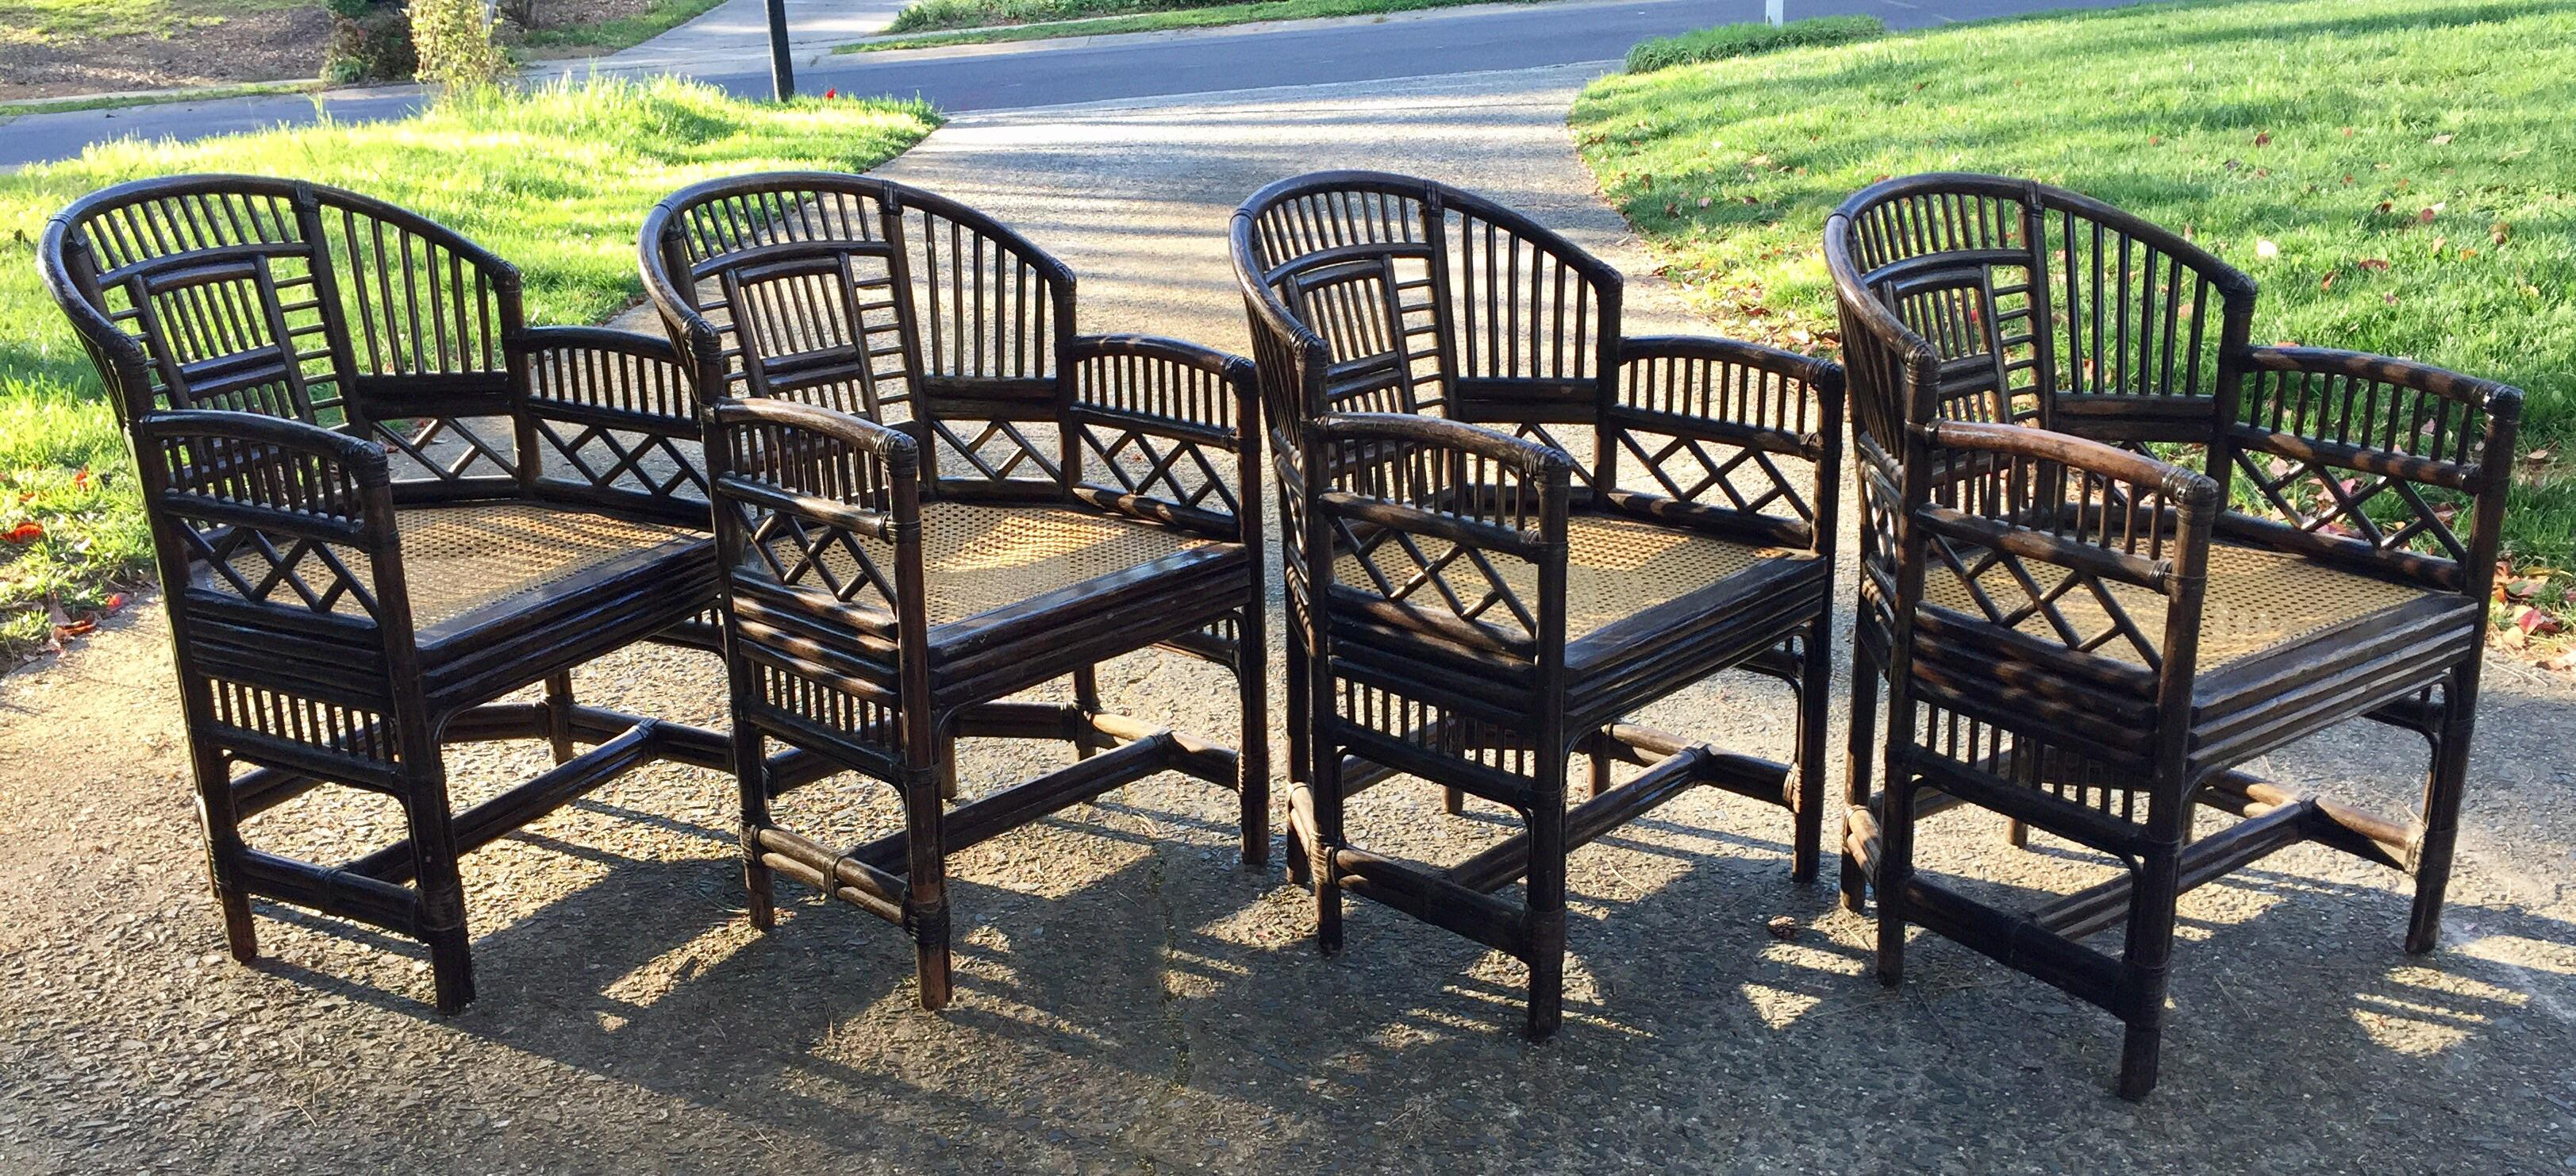 Brighton Pavilion Vintage Bamboo Rattan Chairs U0026 Table For Sale  Image 4 Of 11